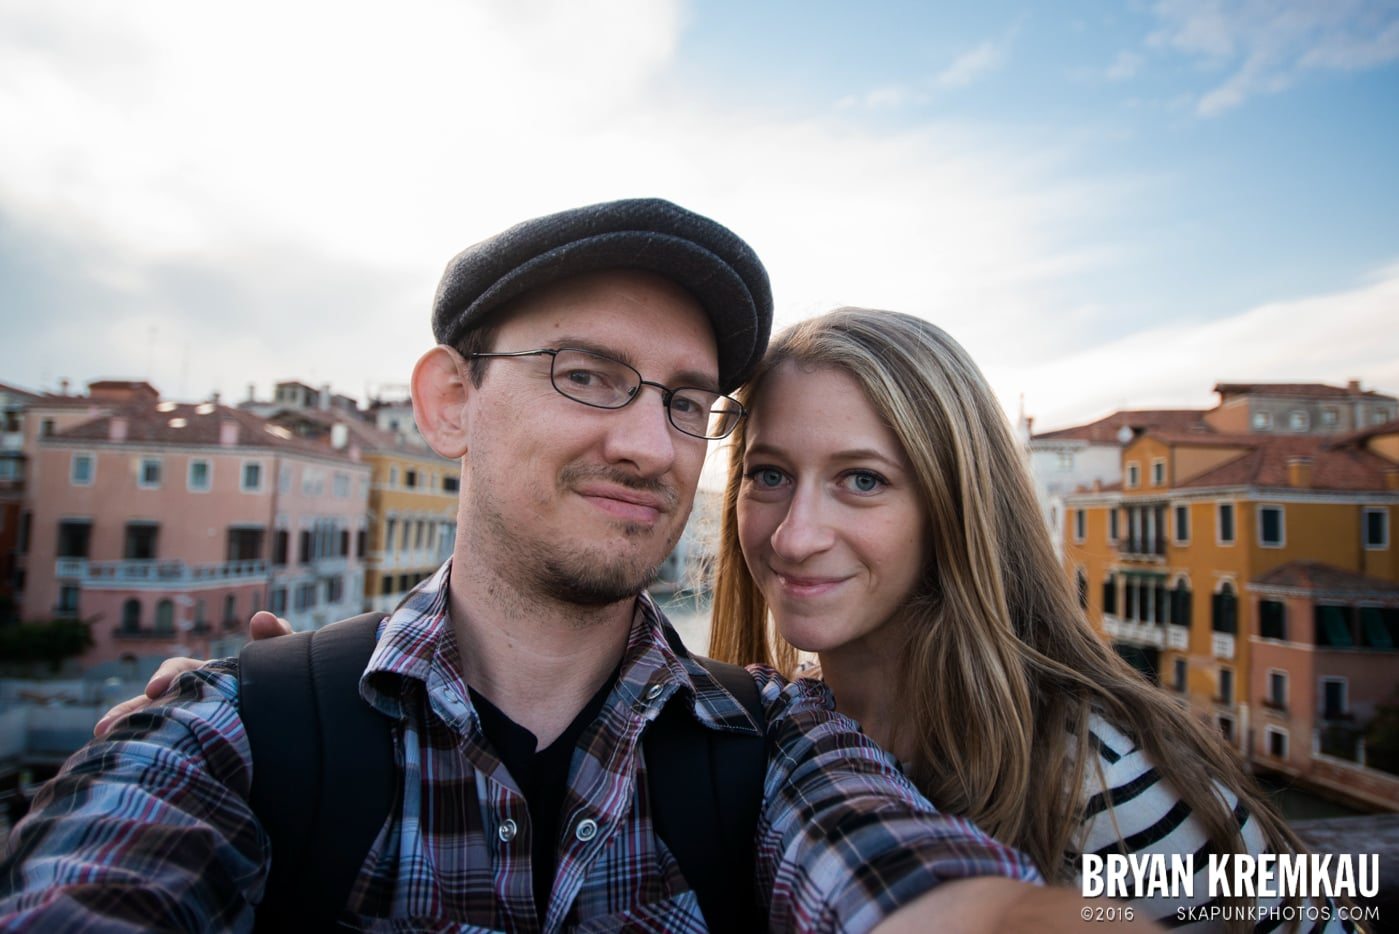 Italy Vacation - Day 4: Venice - 9.12.13 (3)